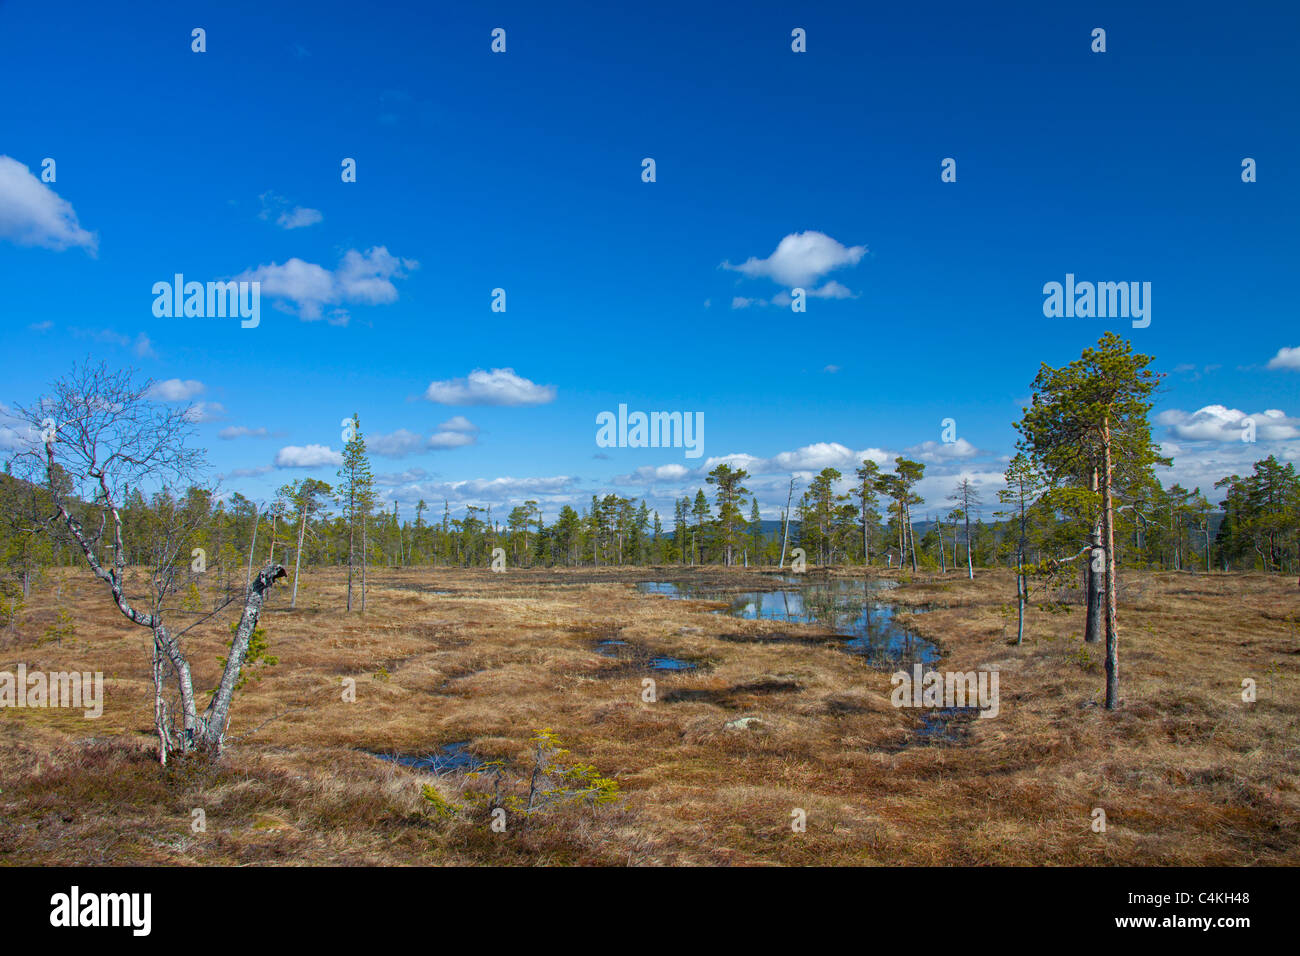 Moorland at the Fulufjället National Park, Dalarna, Sweden - Stock Image